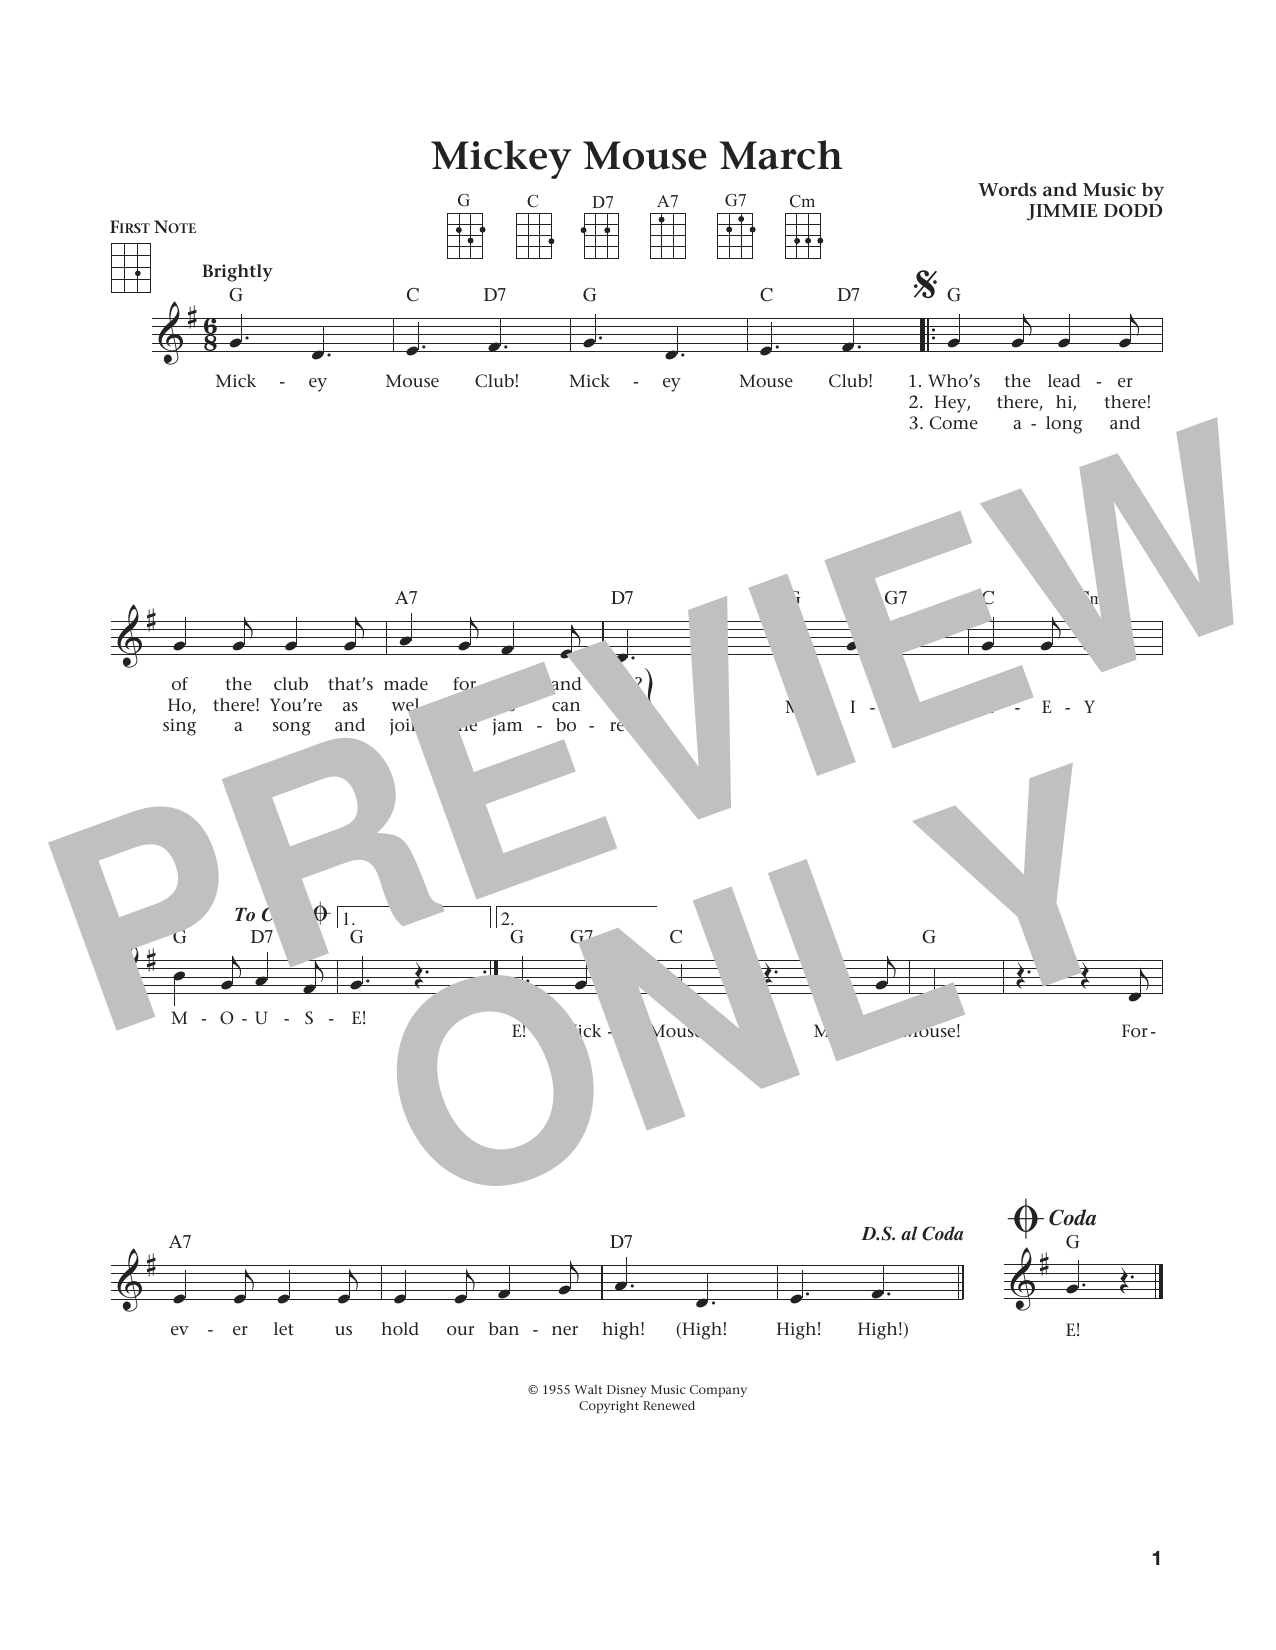 Jimmie Dodd Mickey Mouse March Sheet Music Notes Chords